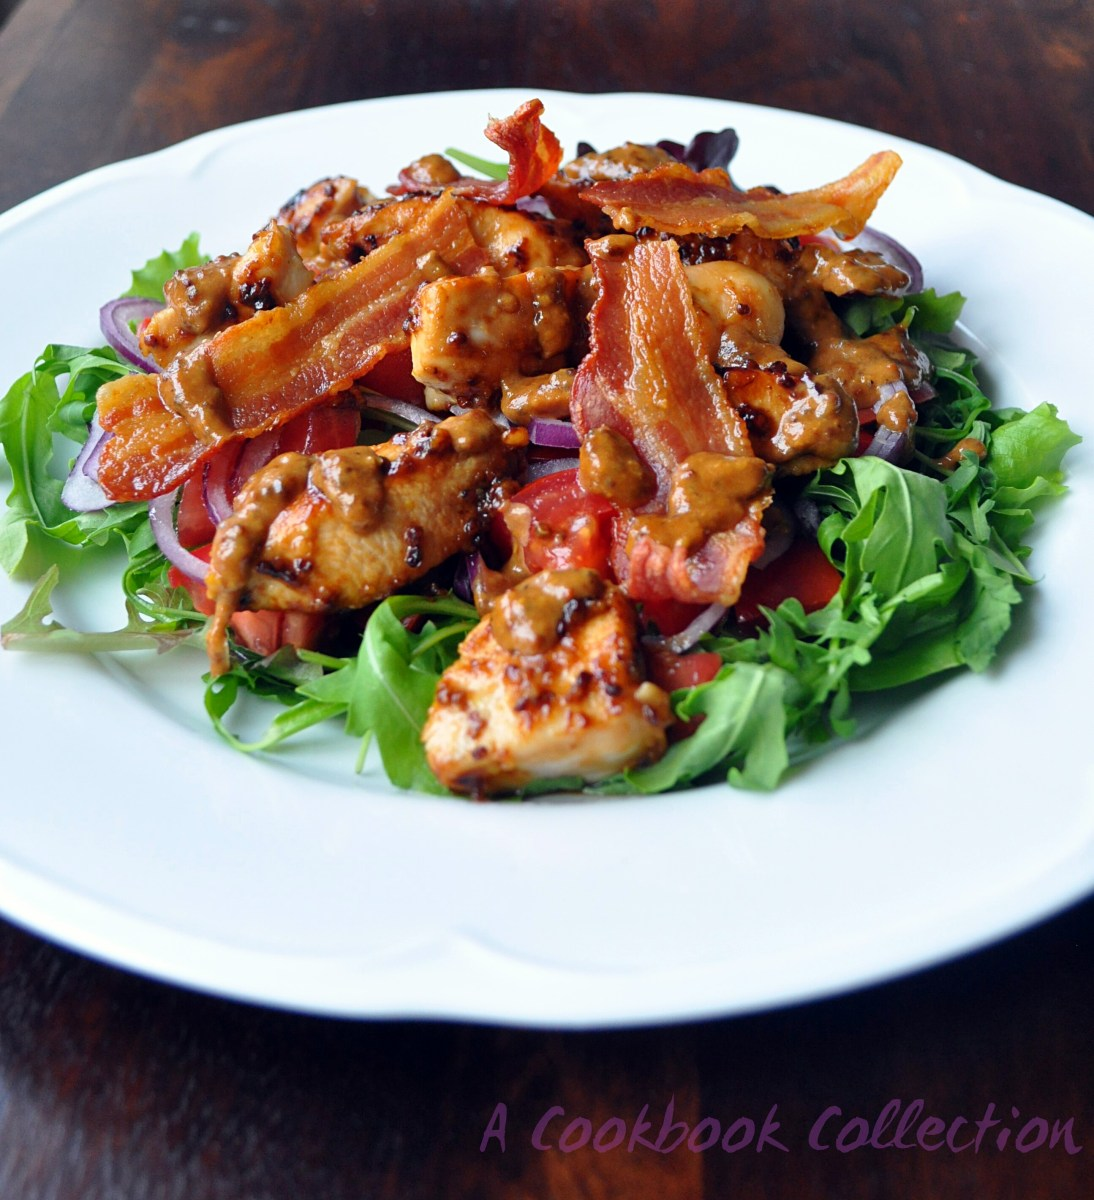 Warm Chicken and Bacon Salad with Honey and Mustard Dressing